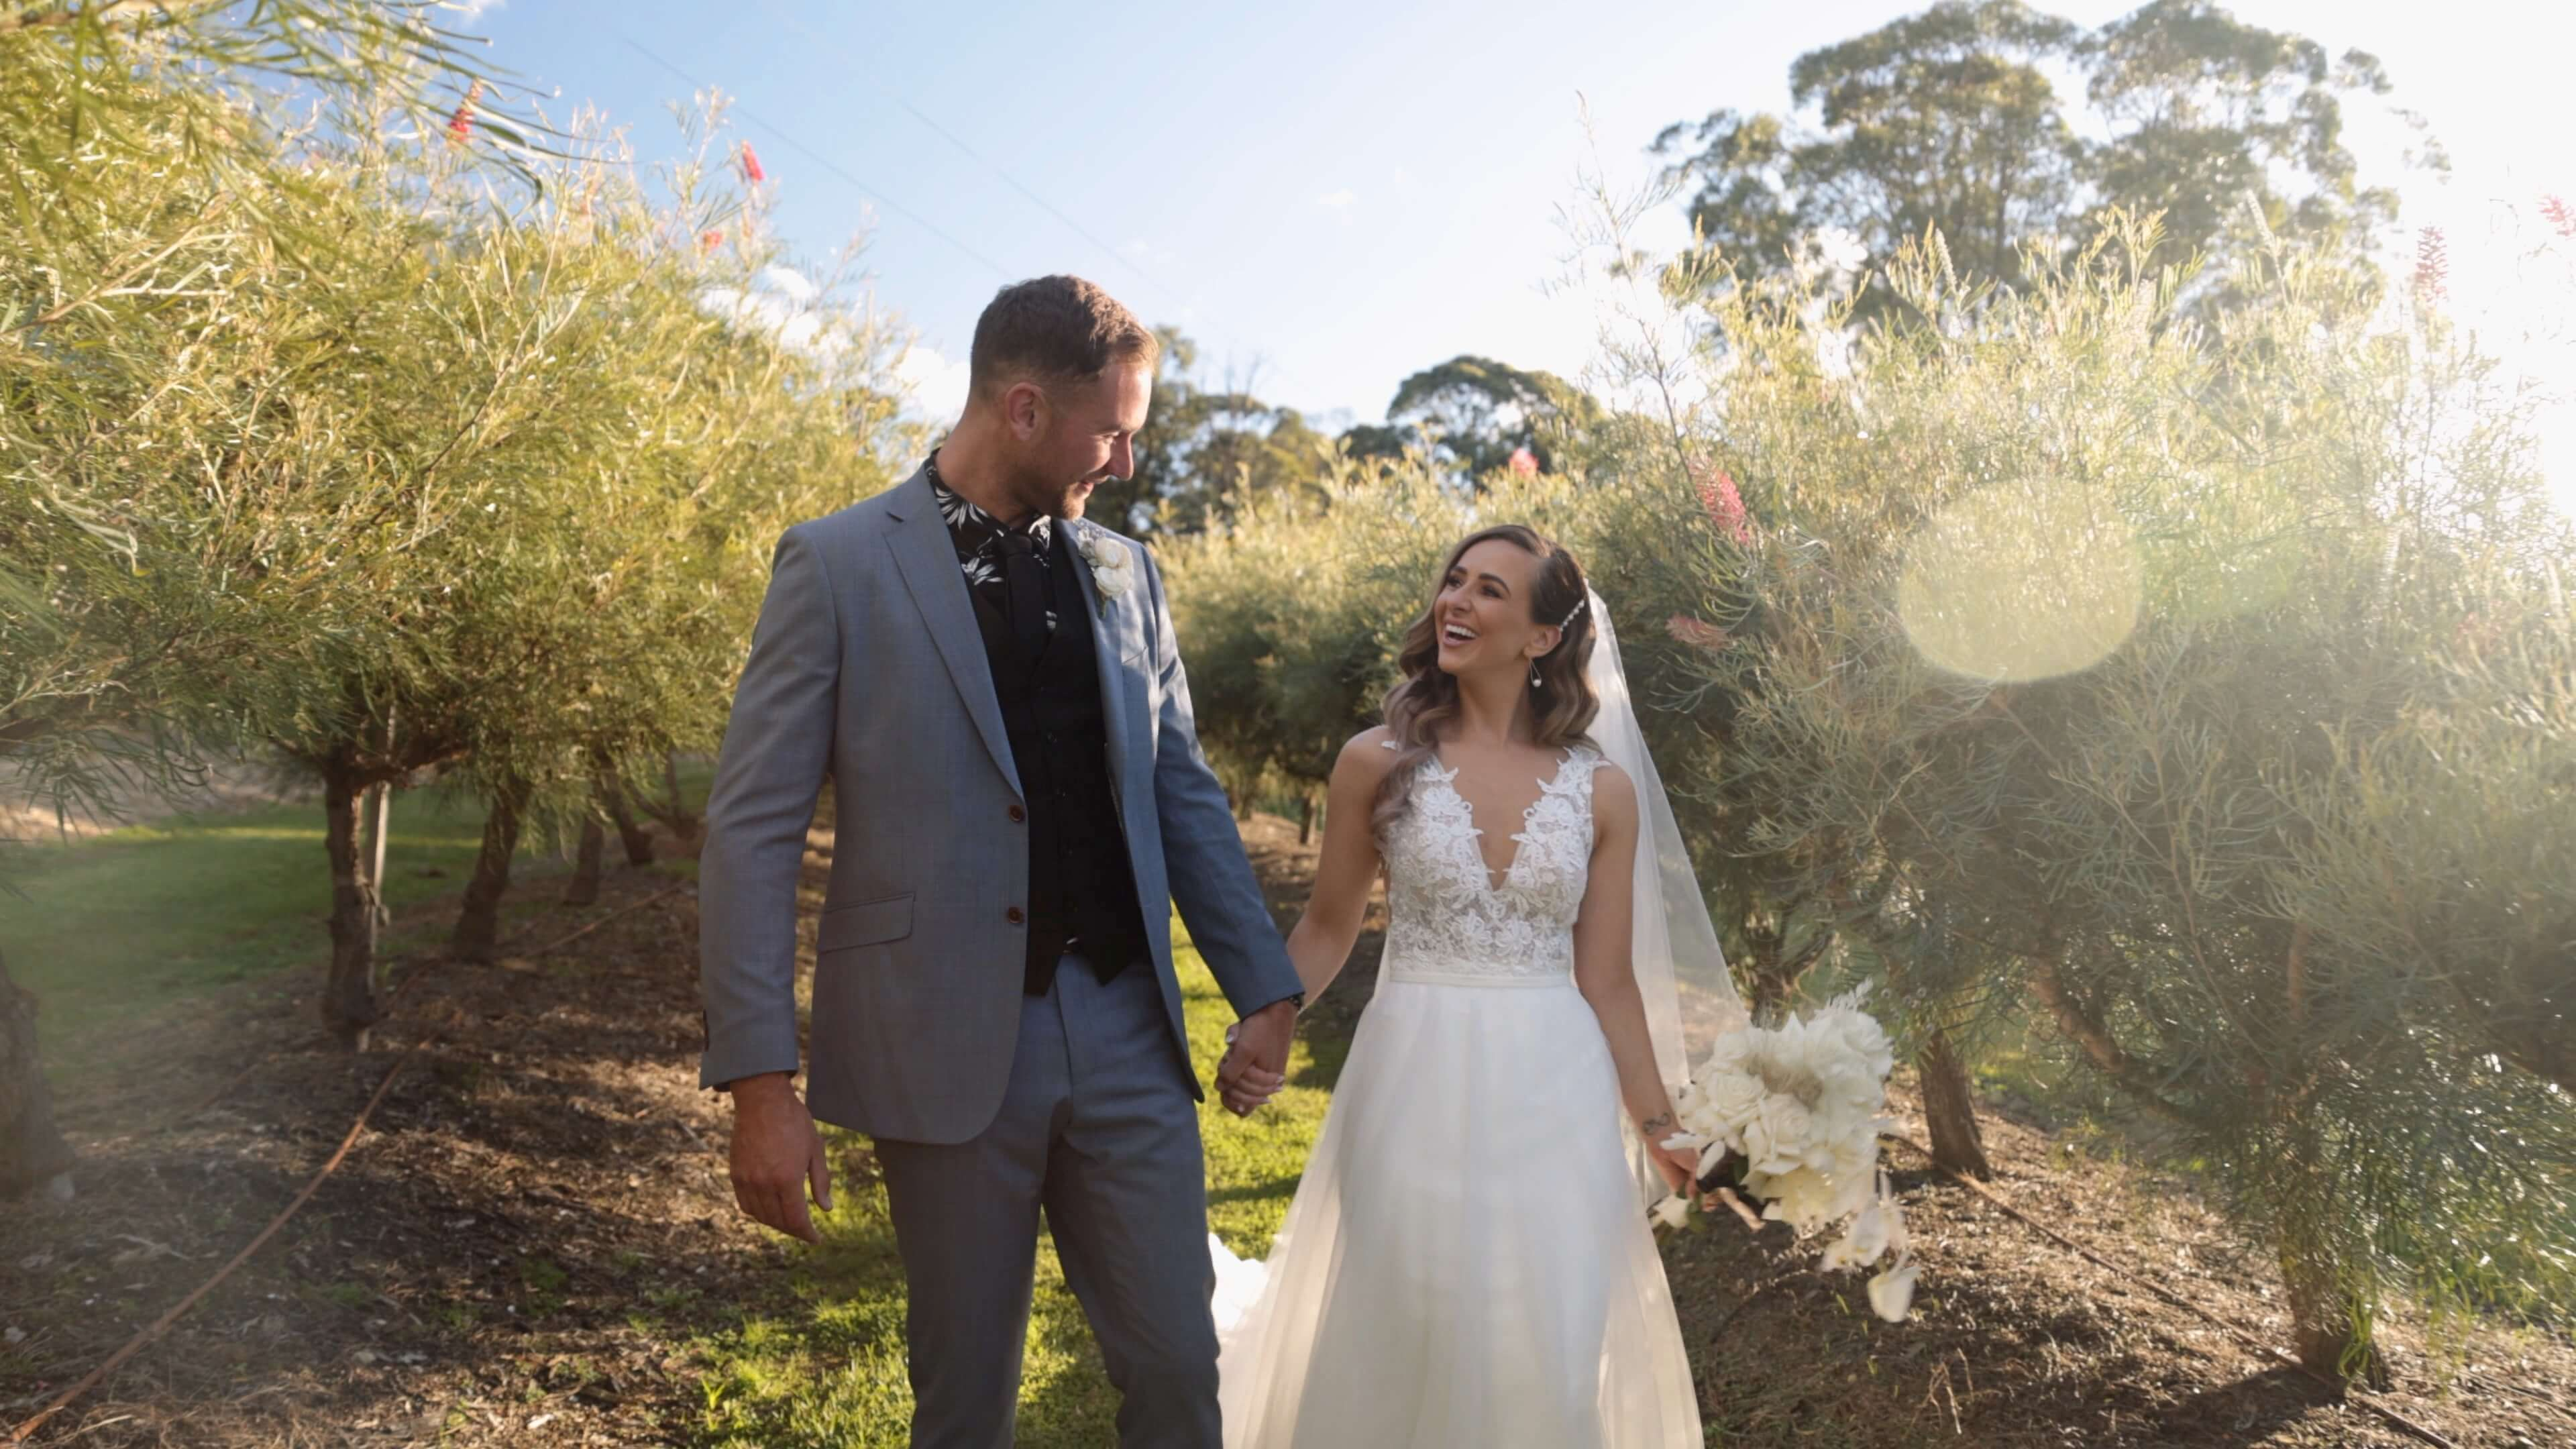 Newly married walking in a sunny orchard - wedding videography services in the Southern Highlands, Kangaroo Valley, Wollongong, and surrounding areas - Lovereel